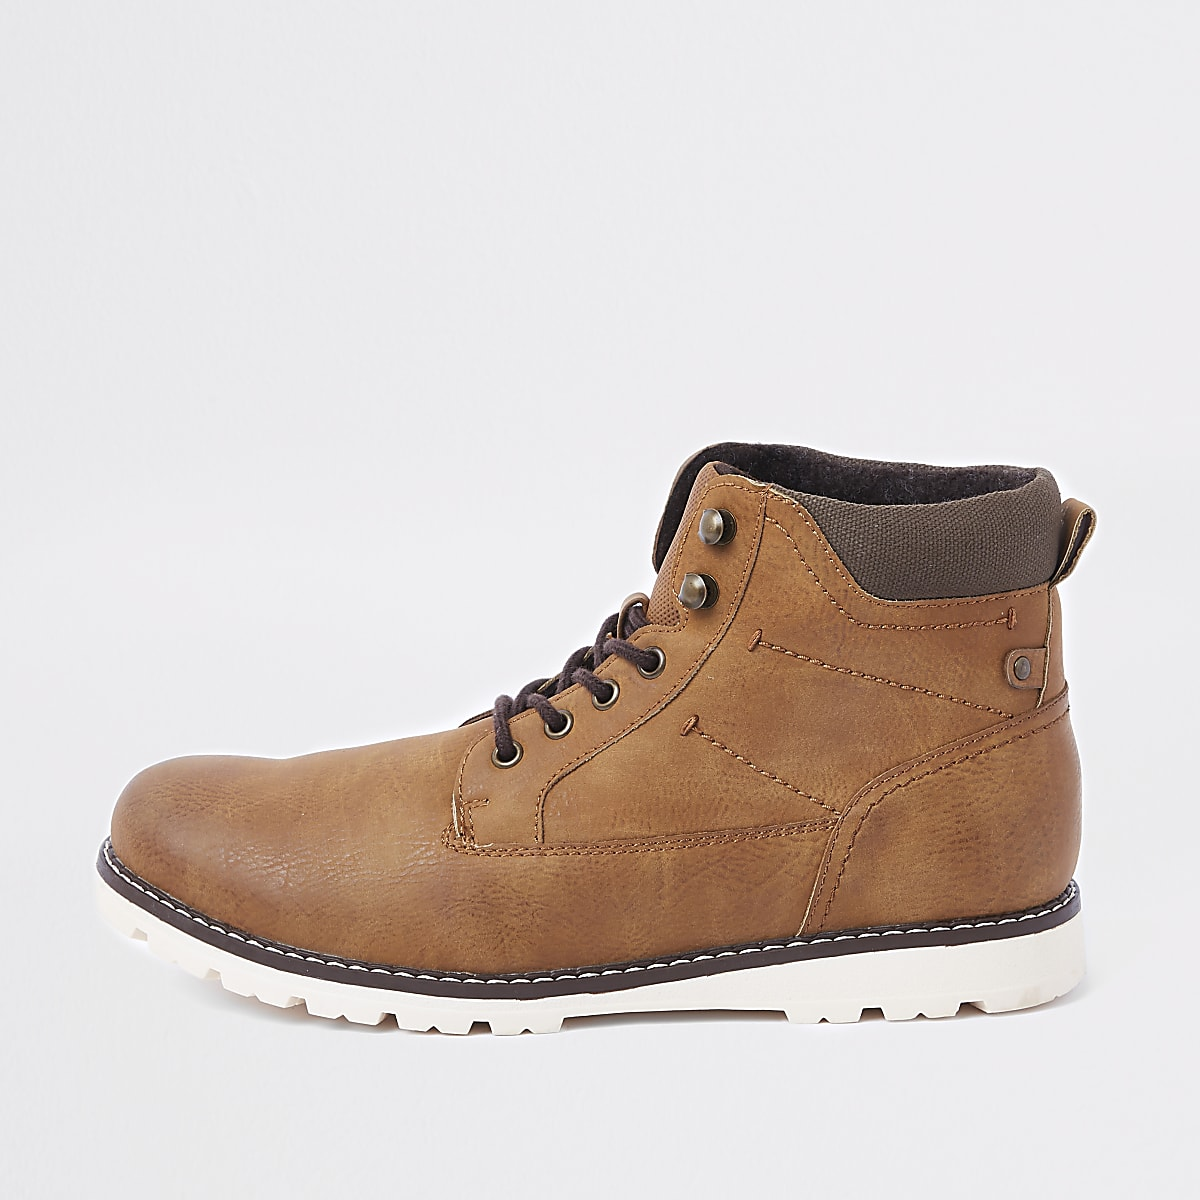 Brown hiking lace-up boots